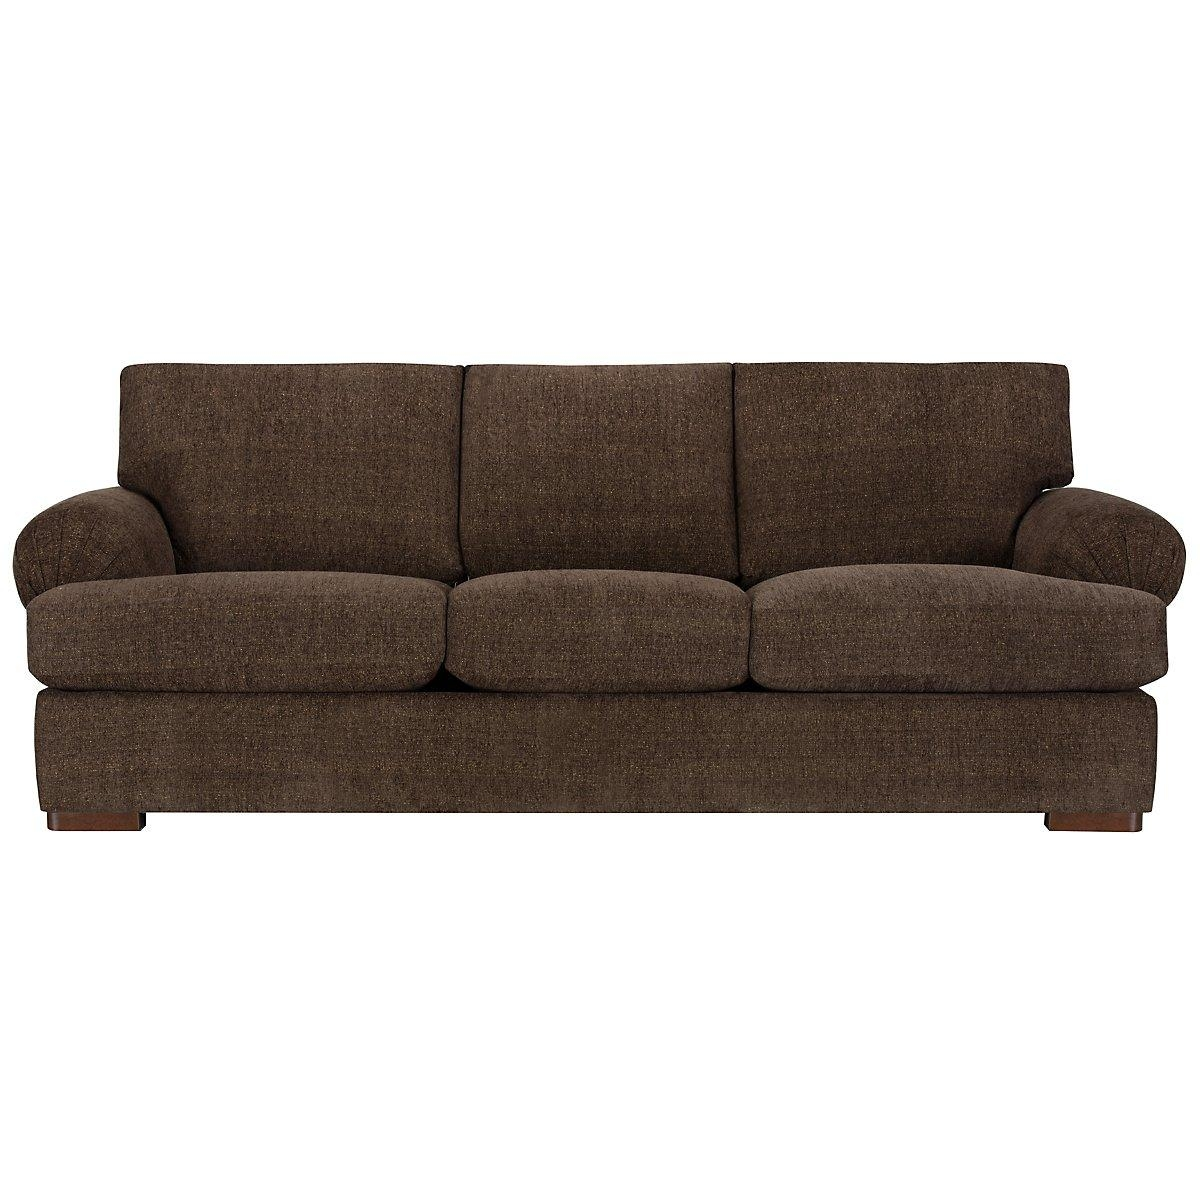 Living Room: Comfortable Brown Microfiber Couch For Elegant Living For Green Microfiber Sofas (Image 15 of 20)